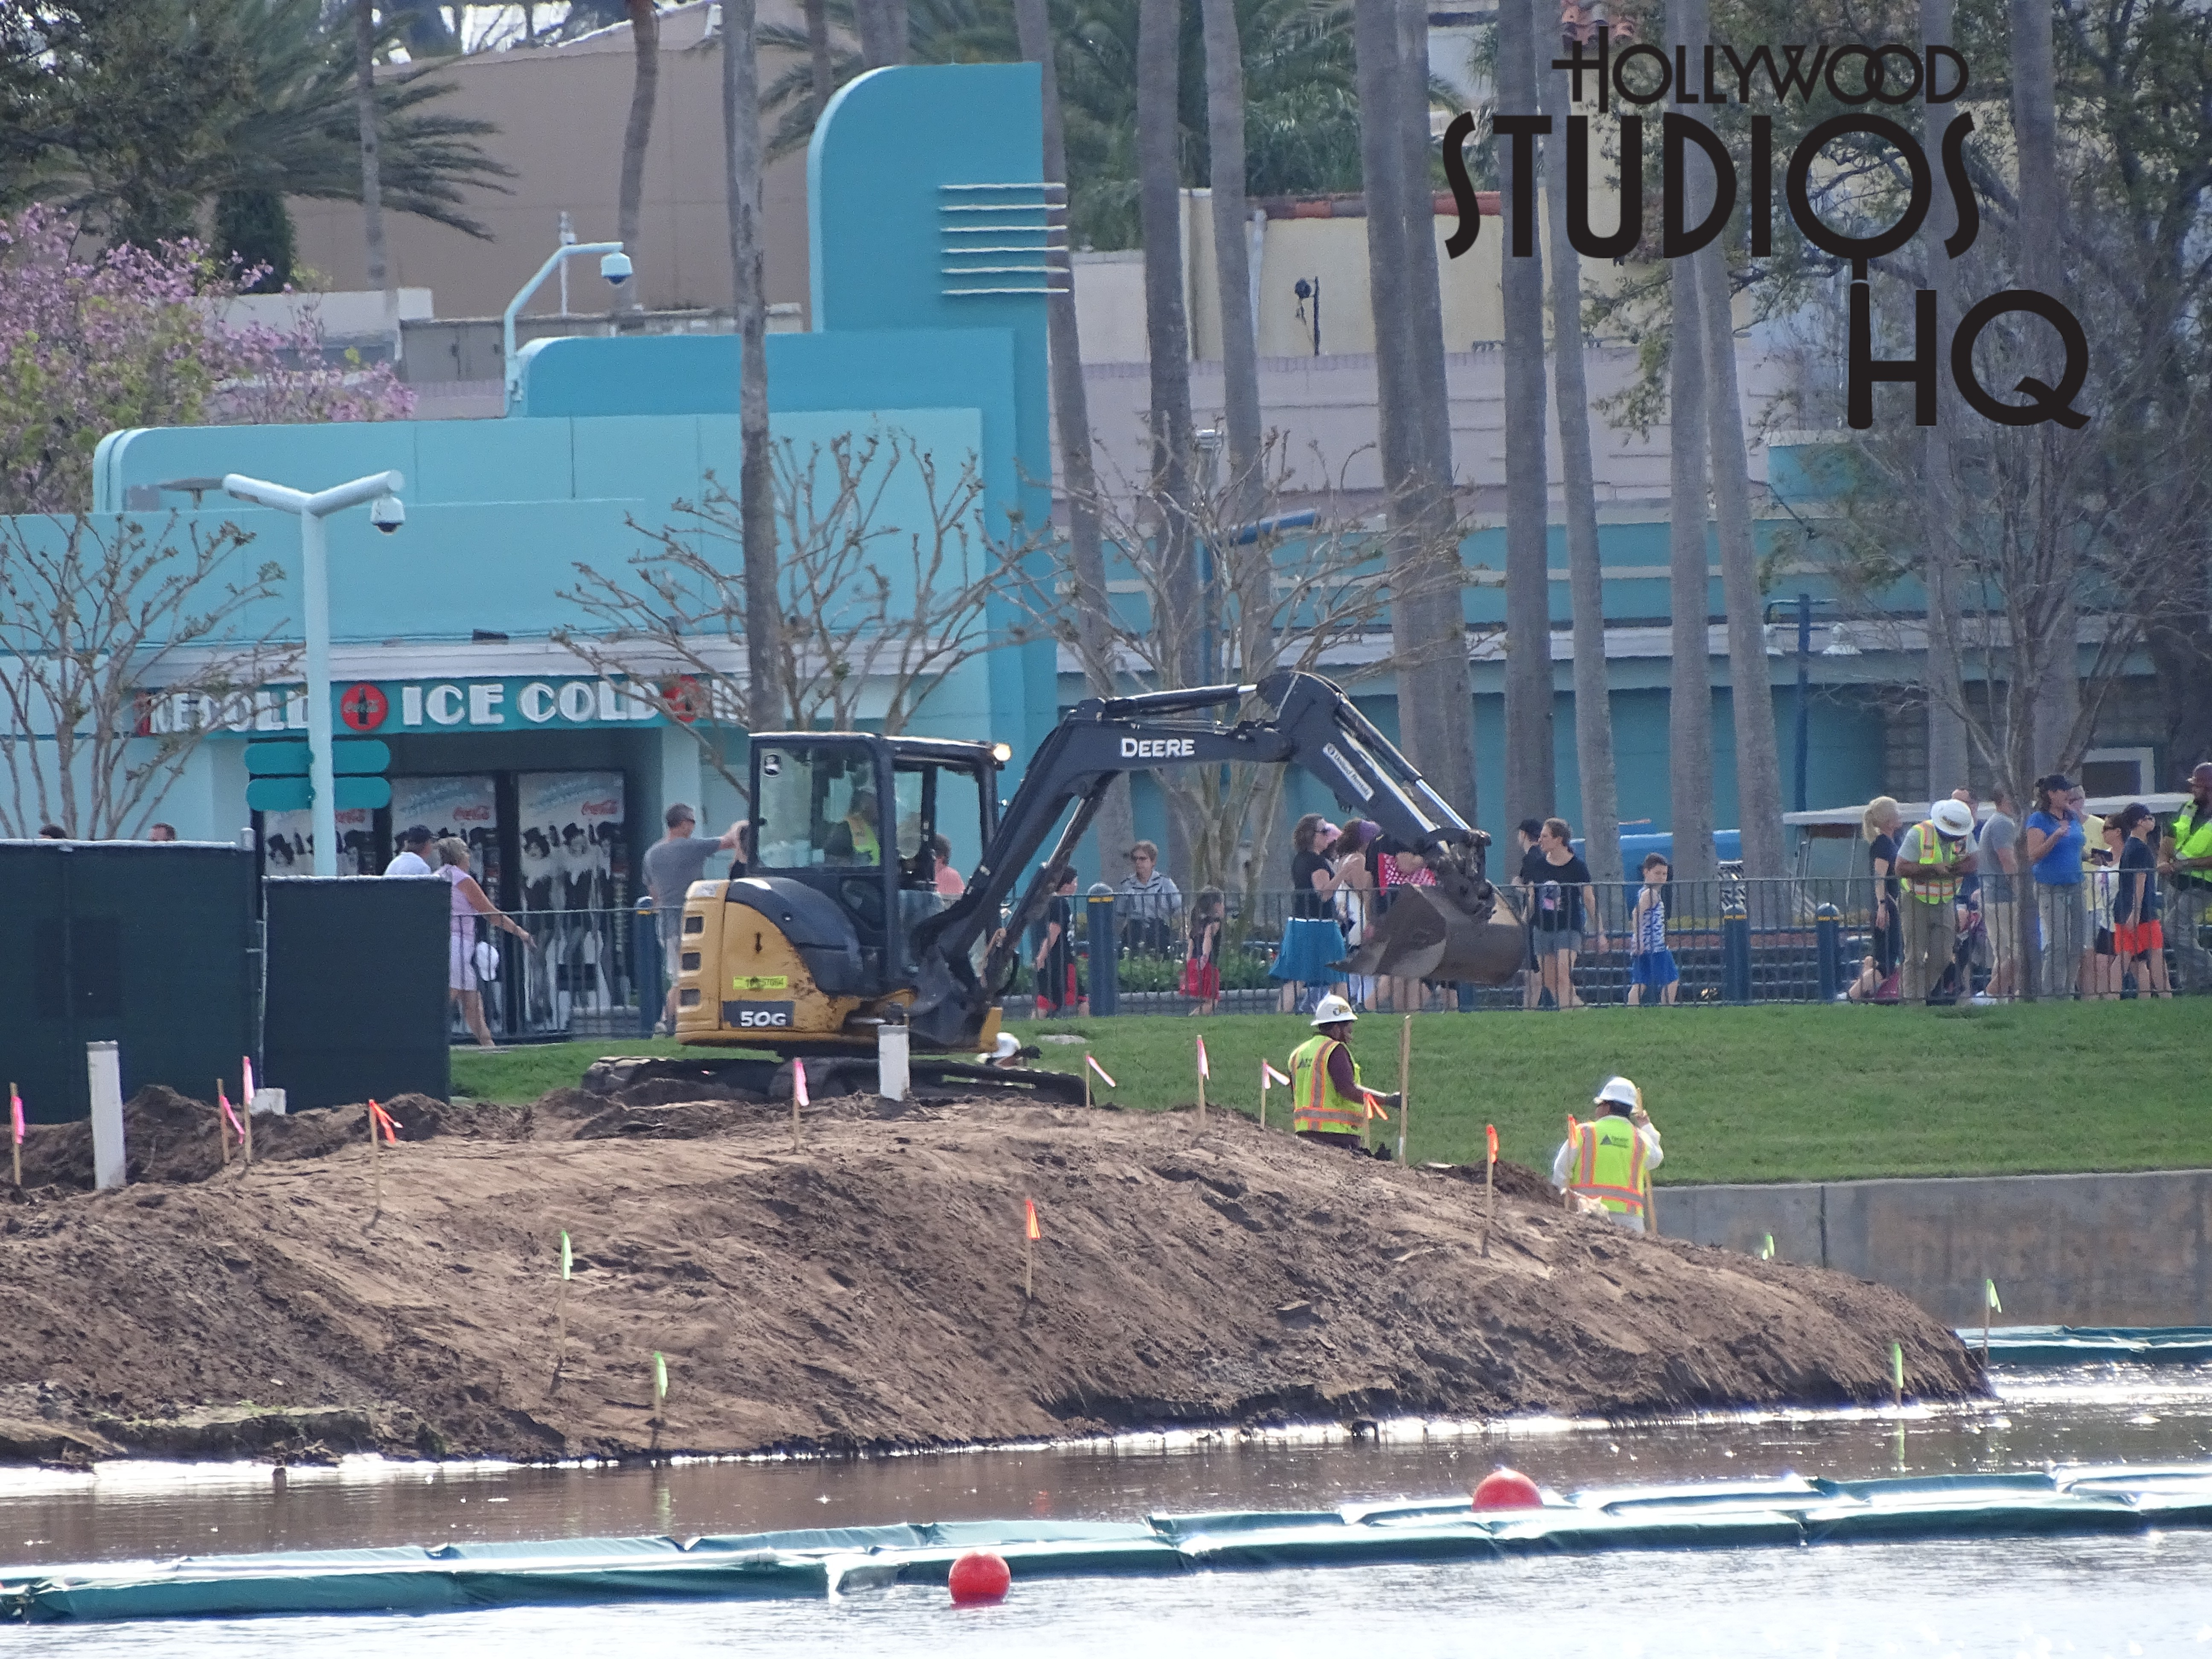 The Music parking lot has been reopened to guests from behind earlier erected construction walls to reveal one row of new LED technology lighting. Additional light fixture installation in this zone may be delayed in anticipation of the traditional large crowds soon arriving for spring break vacations during which time all available parking is vital. Numerous concrete barricades and other construction materials remain near the old parking ticket booth entrance off Lake Buena Vista…perhaps the old booth will be gone very soon. Meanwhile, construction crews are working steadily on the Studios future Skyline station. The gondola system's stop here upon final completion will keep with the theming of the front entrance to the Park with its Golden Era architectural style. Enjoy the new photos and video below to fully experience of all of this related construction work in progress this week outside of the park.